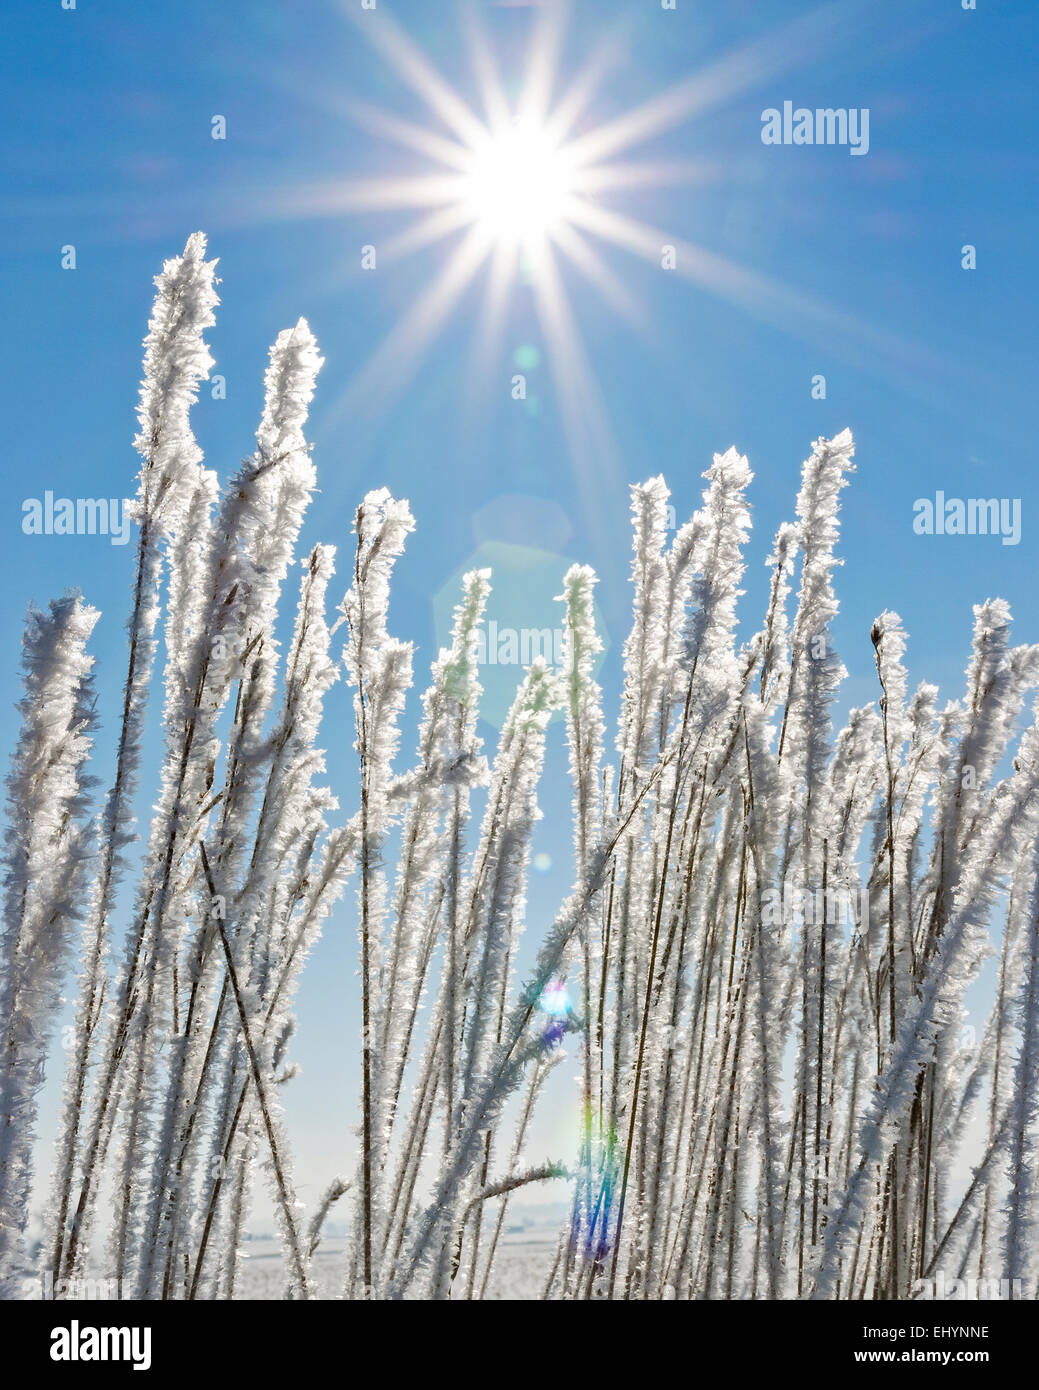 Frost covered wheat/grass in Colorado with blue sky and sun burst - Stock Image